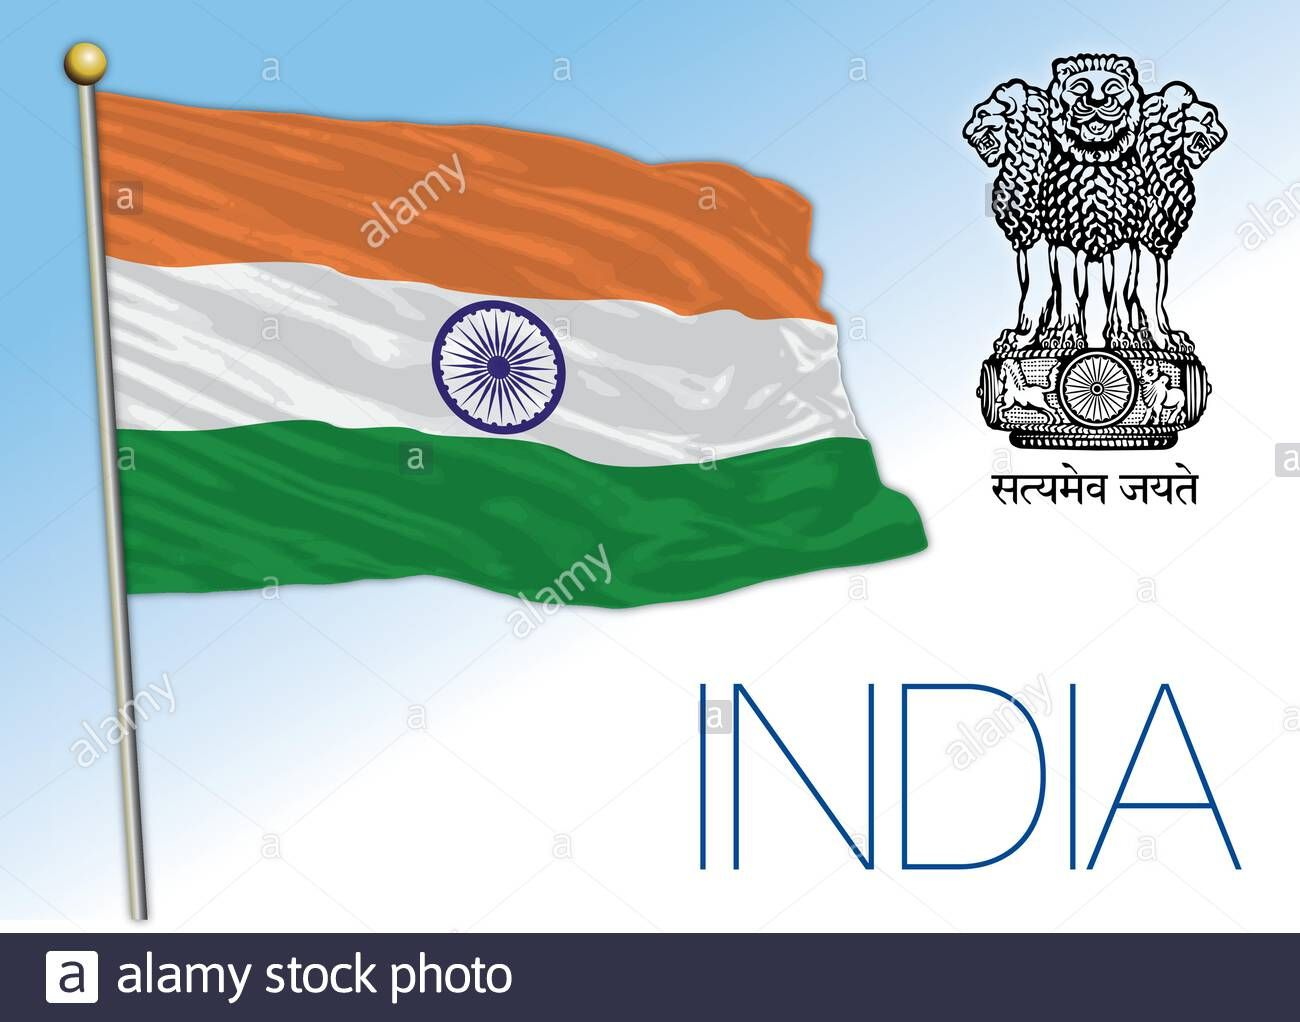 Download This Stock Vector India Official National Flag And Coat Of Arms Asiatic Country Vector Illustration 2b4ej27 From Alamy S Library Of Millio En 2020 Banderas